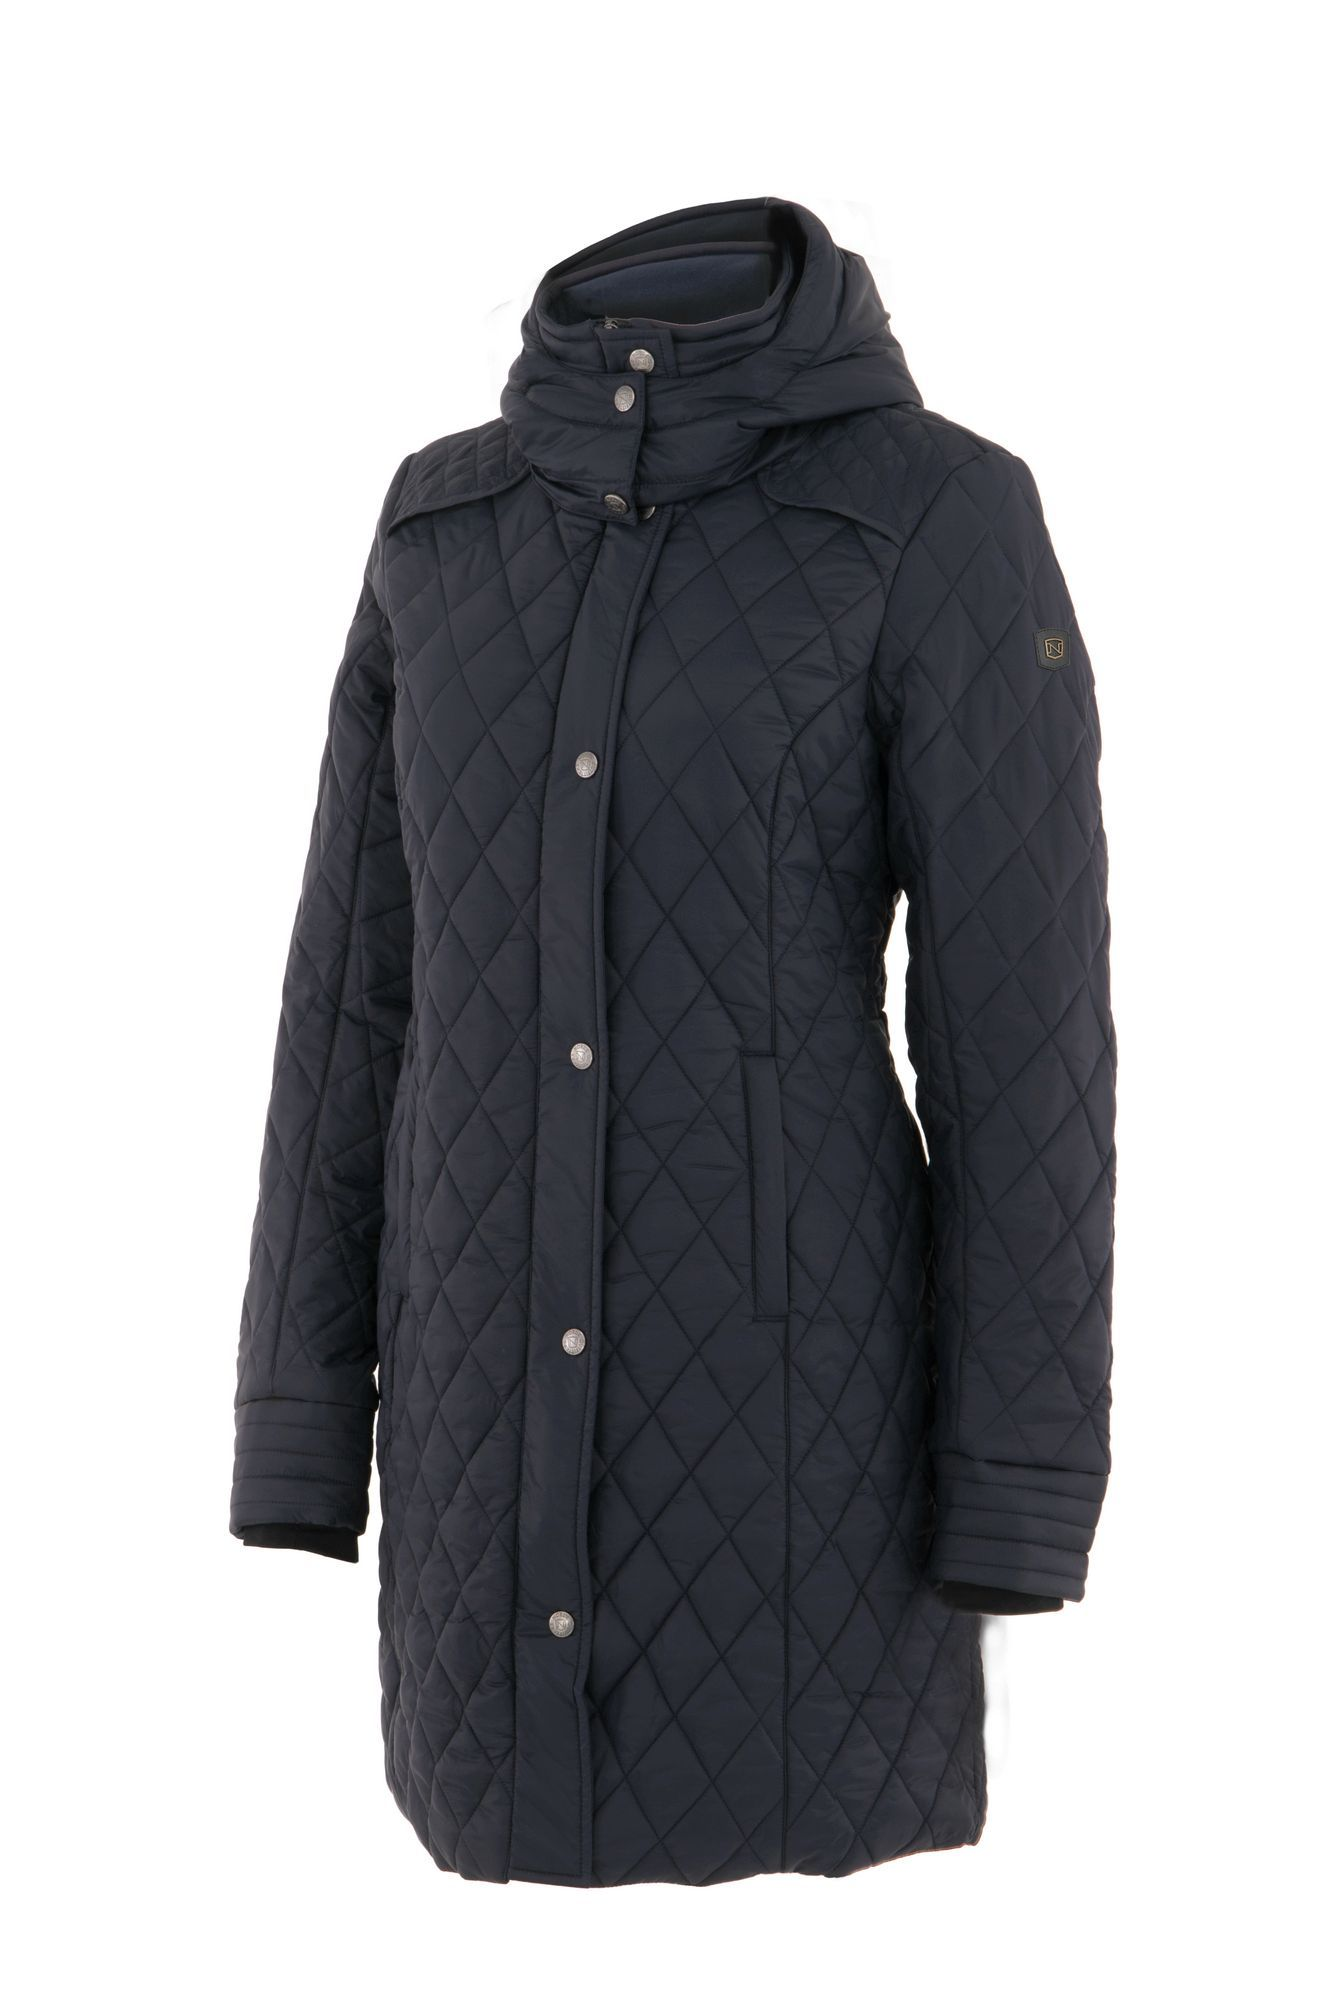 Quilted Coat Quilted Coat Outerwear Women Waterproof Parka [ 2000 x 1333 Pixel ]